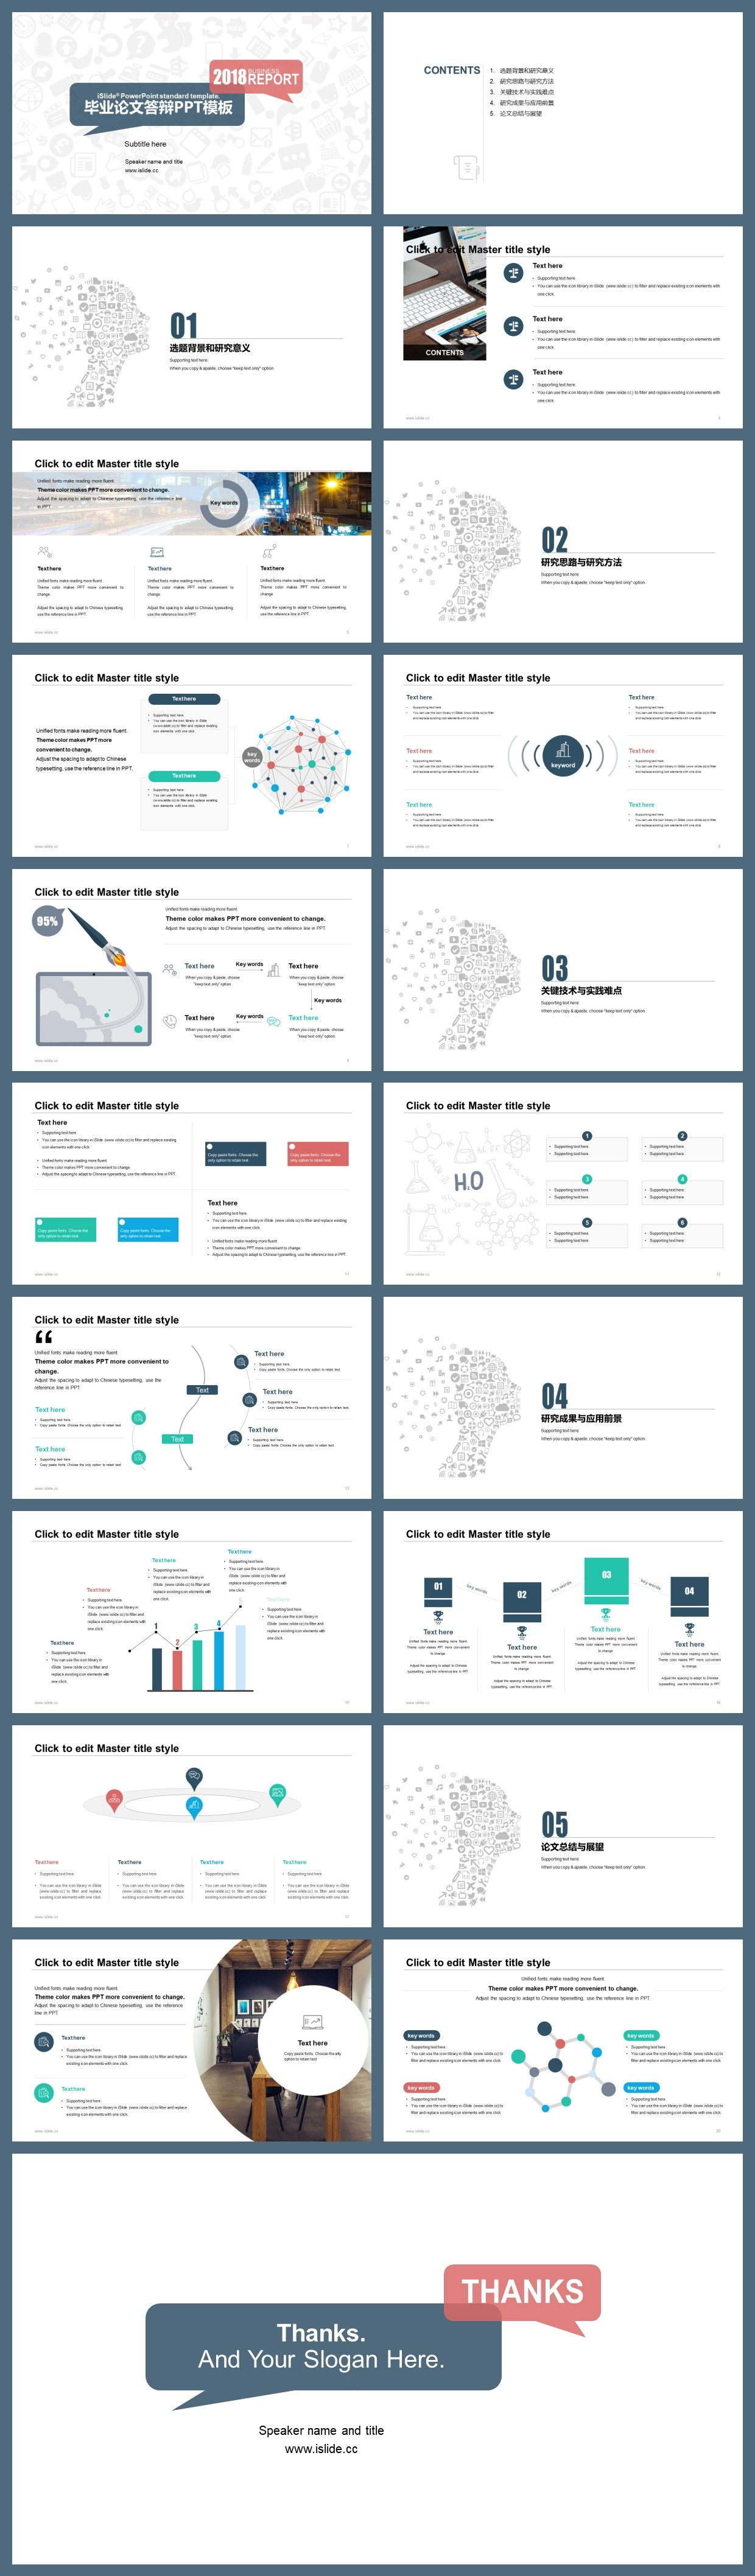 Master Thesis Defense Powerpoint Template – Just Free Slides Throughout